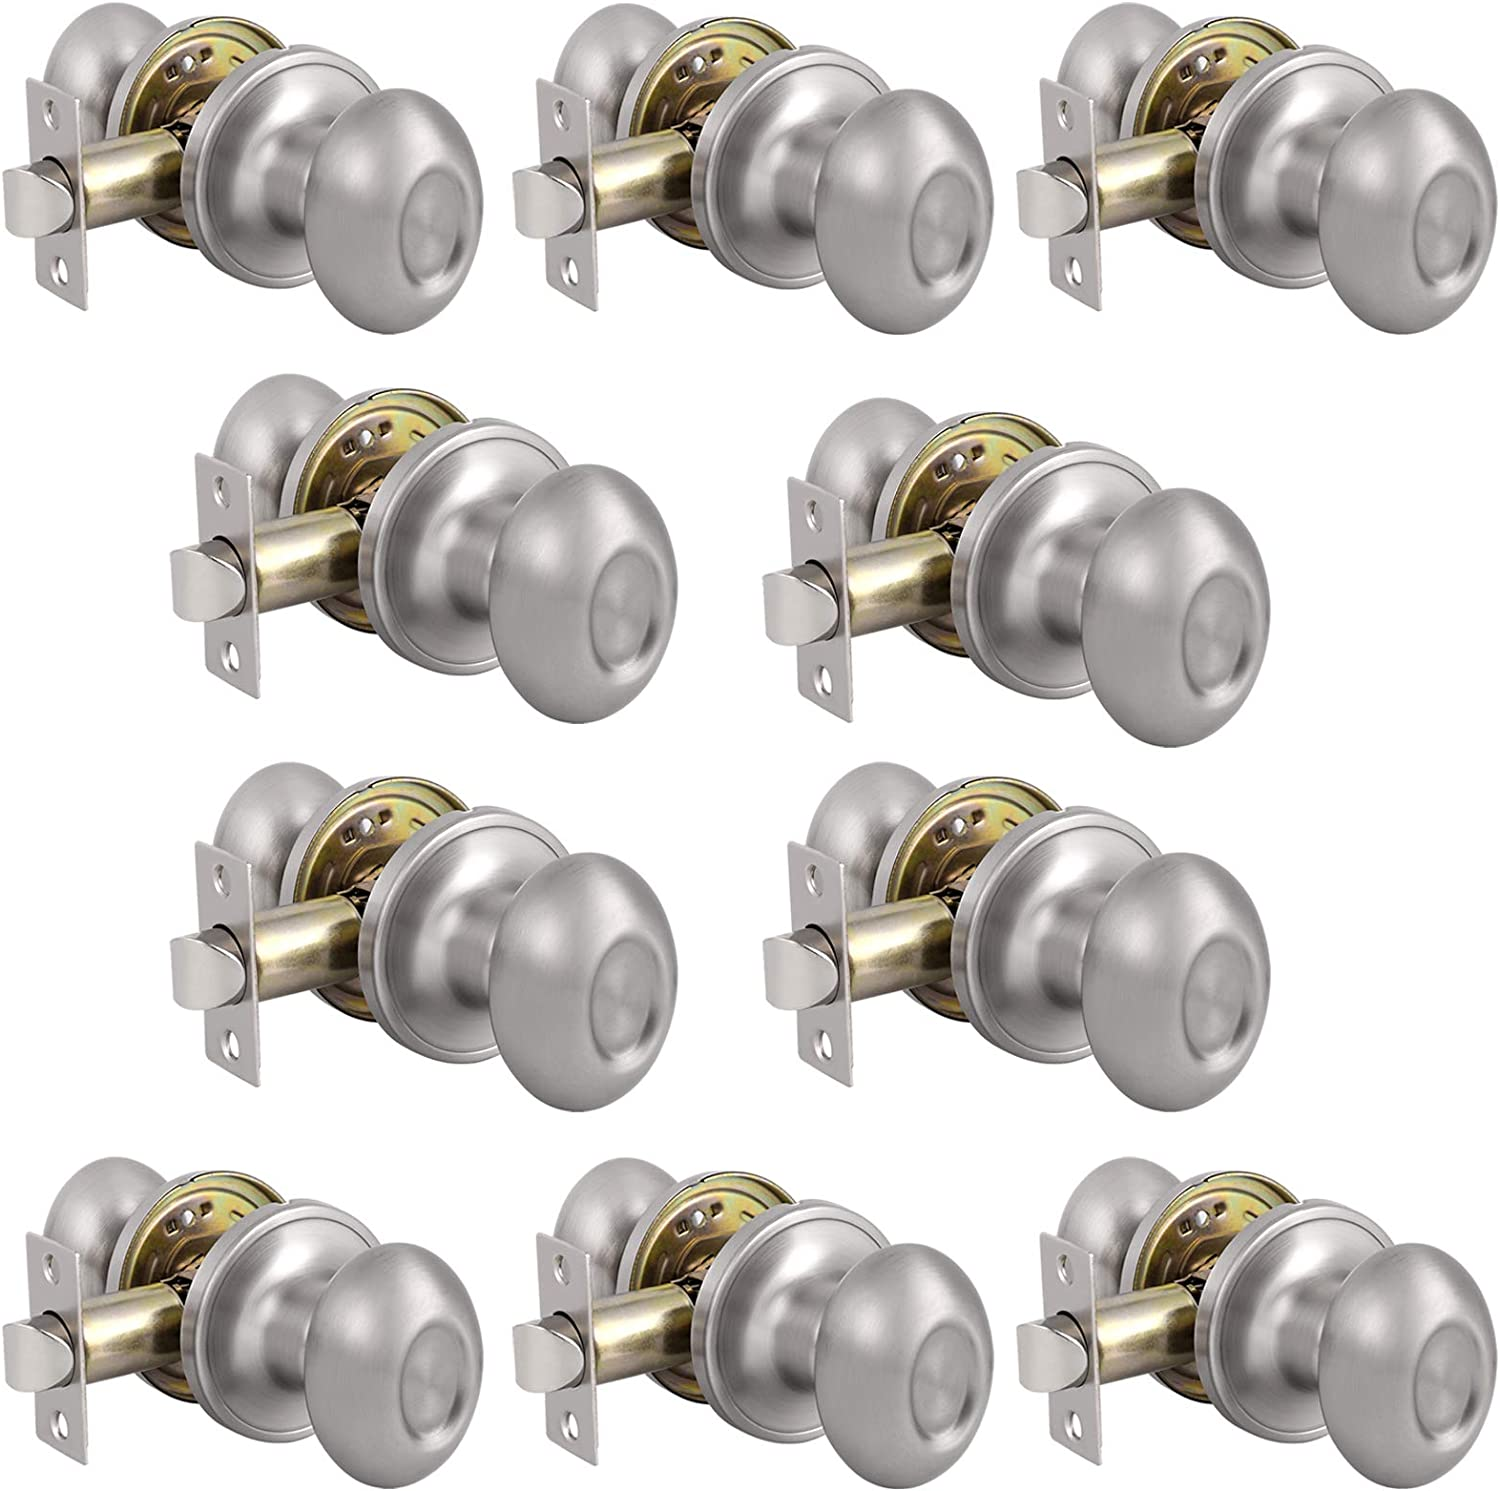 Probrico Egg Style Hall Brand new and Closet Ni Brushed Passage Special sale item Door Knobs